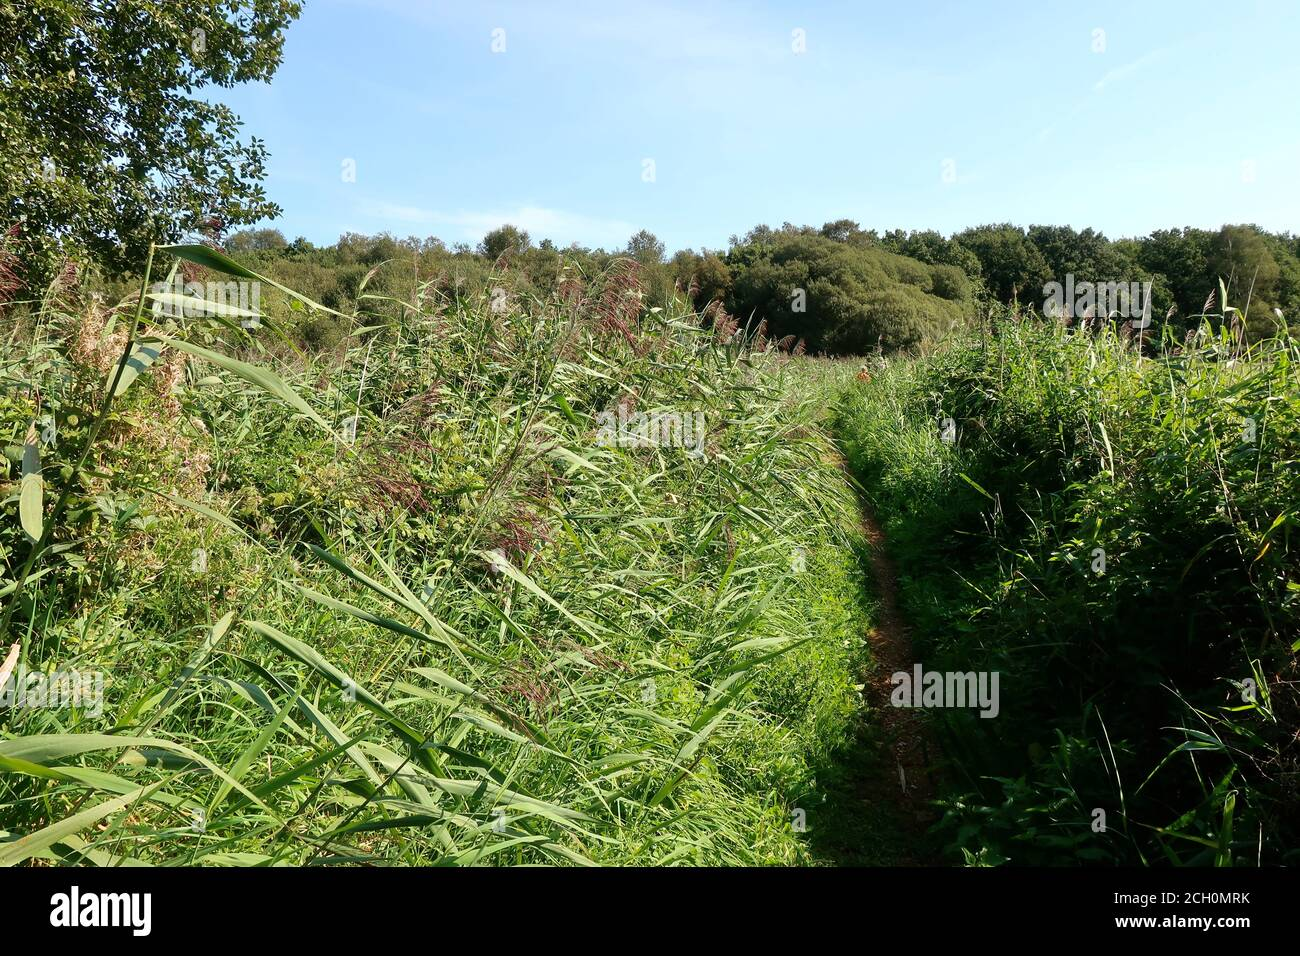 Snape, Suffolk, UK - 13 September 2020: Sunny Sunday autumn afternoon by the River Alde. Badly overgrown riverside footpath. Stock Photo